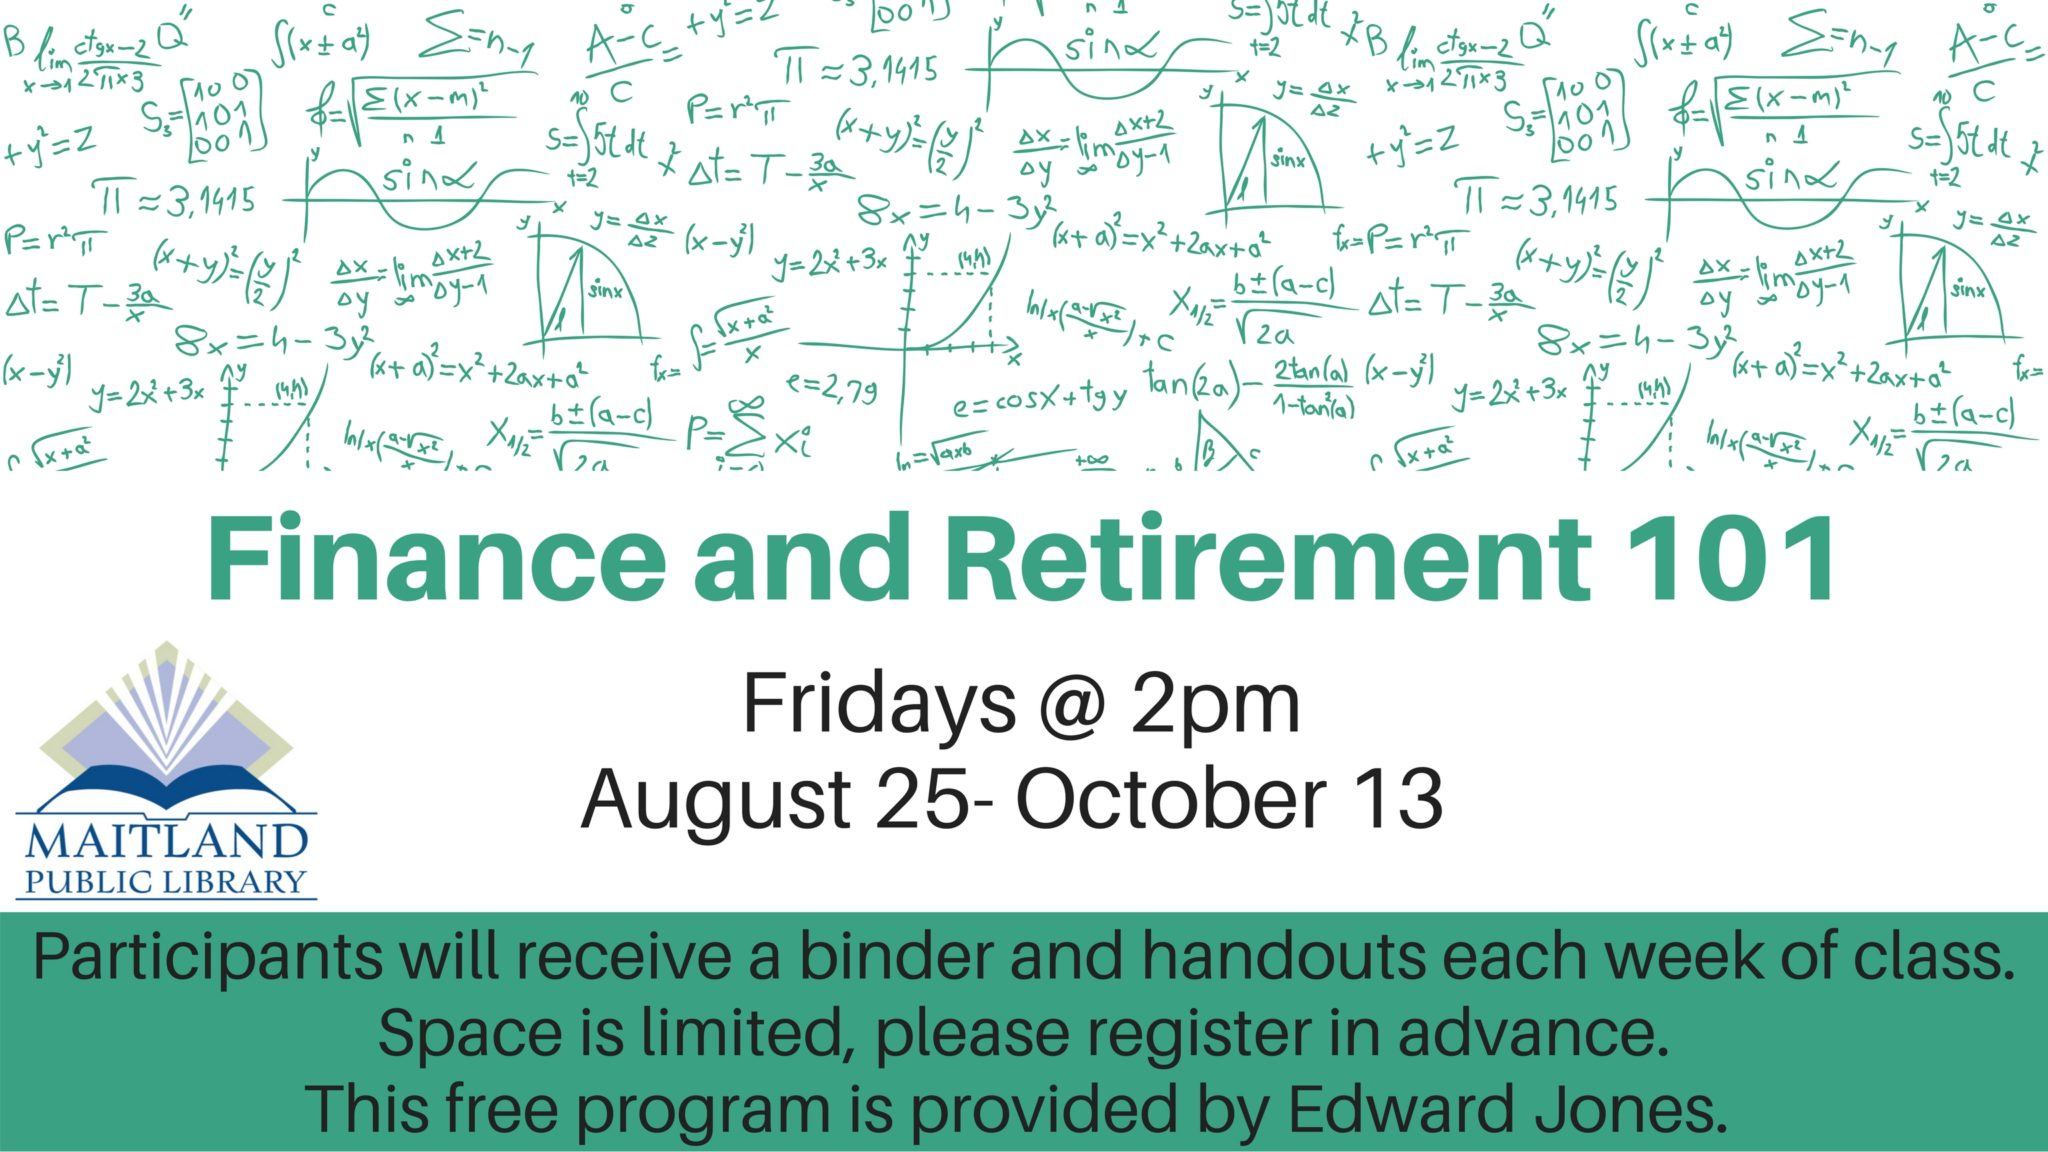 Finance and Retirement 101